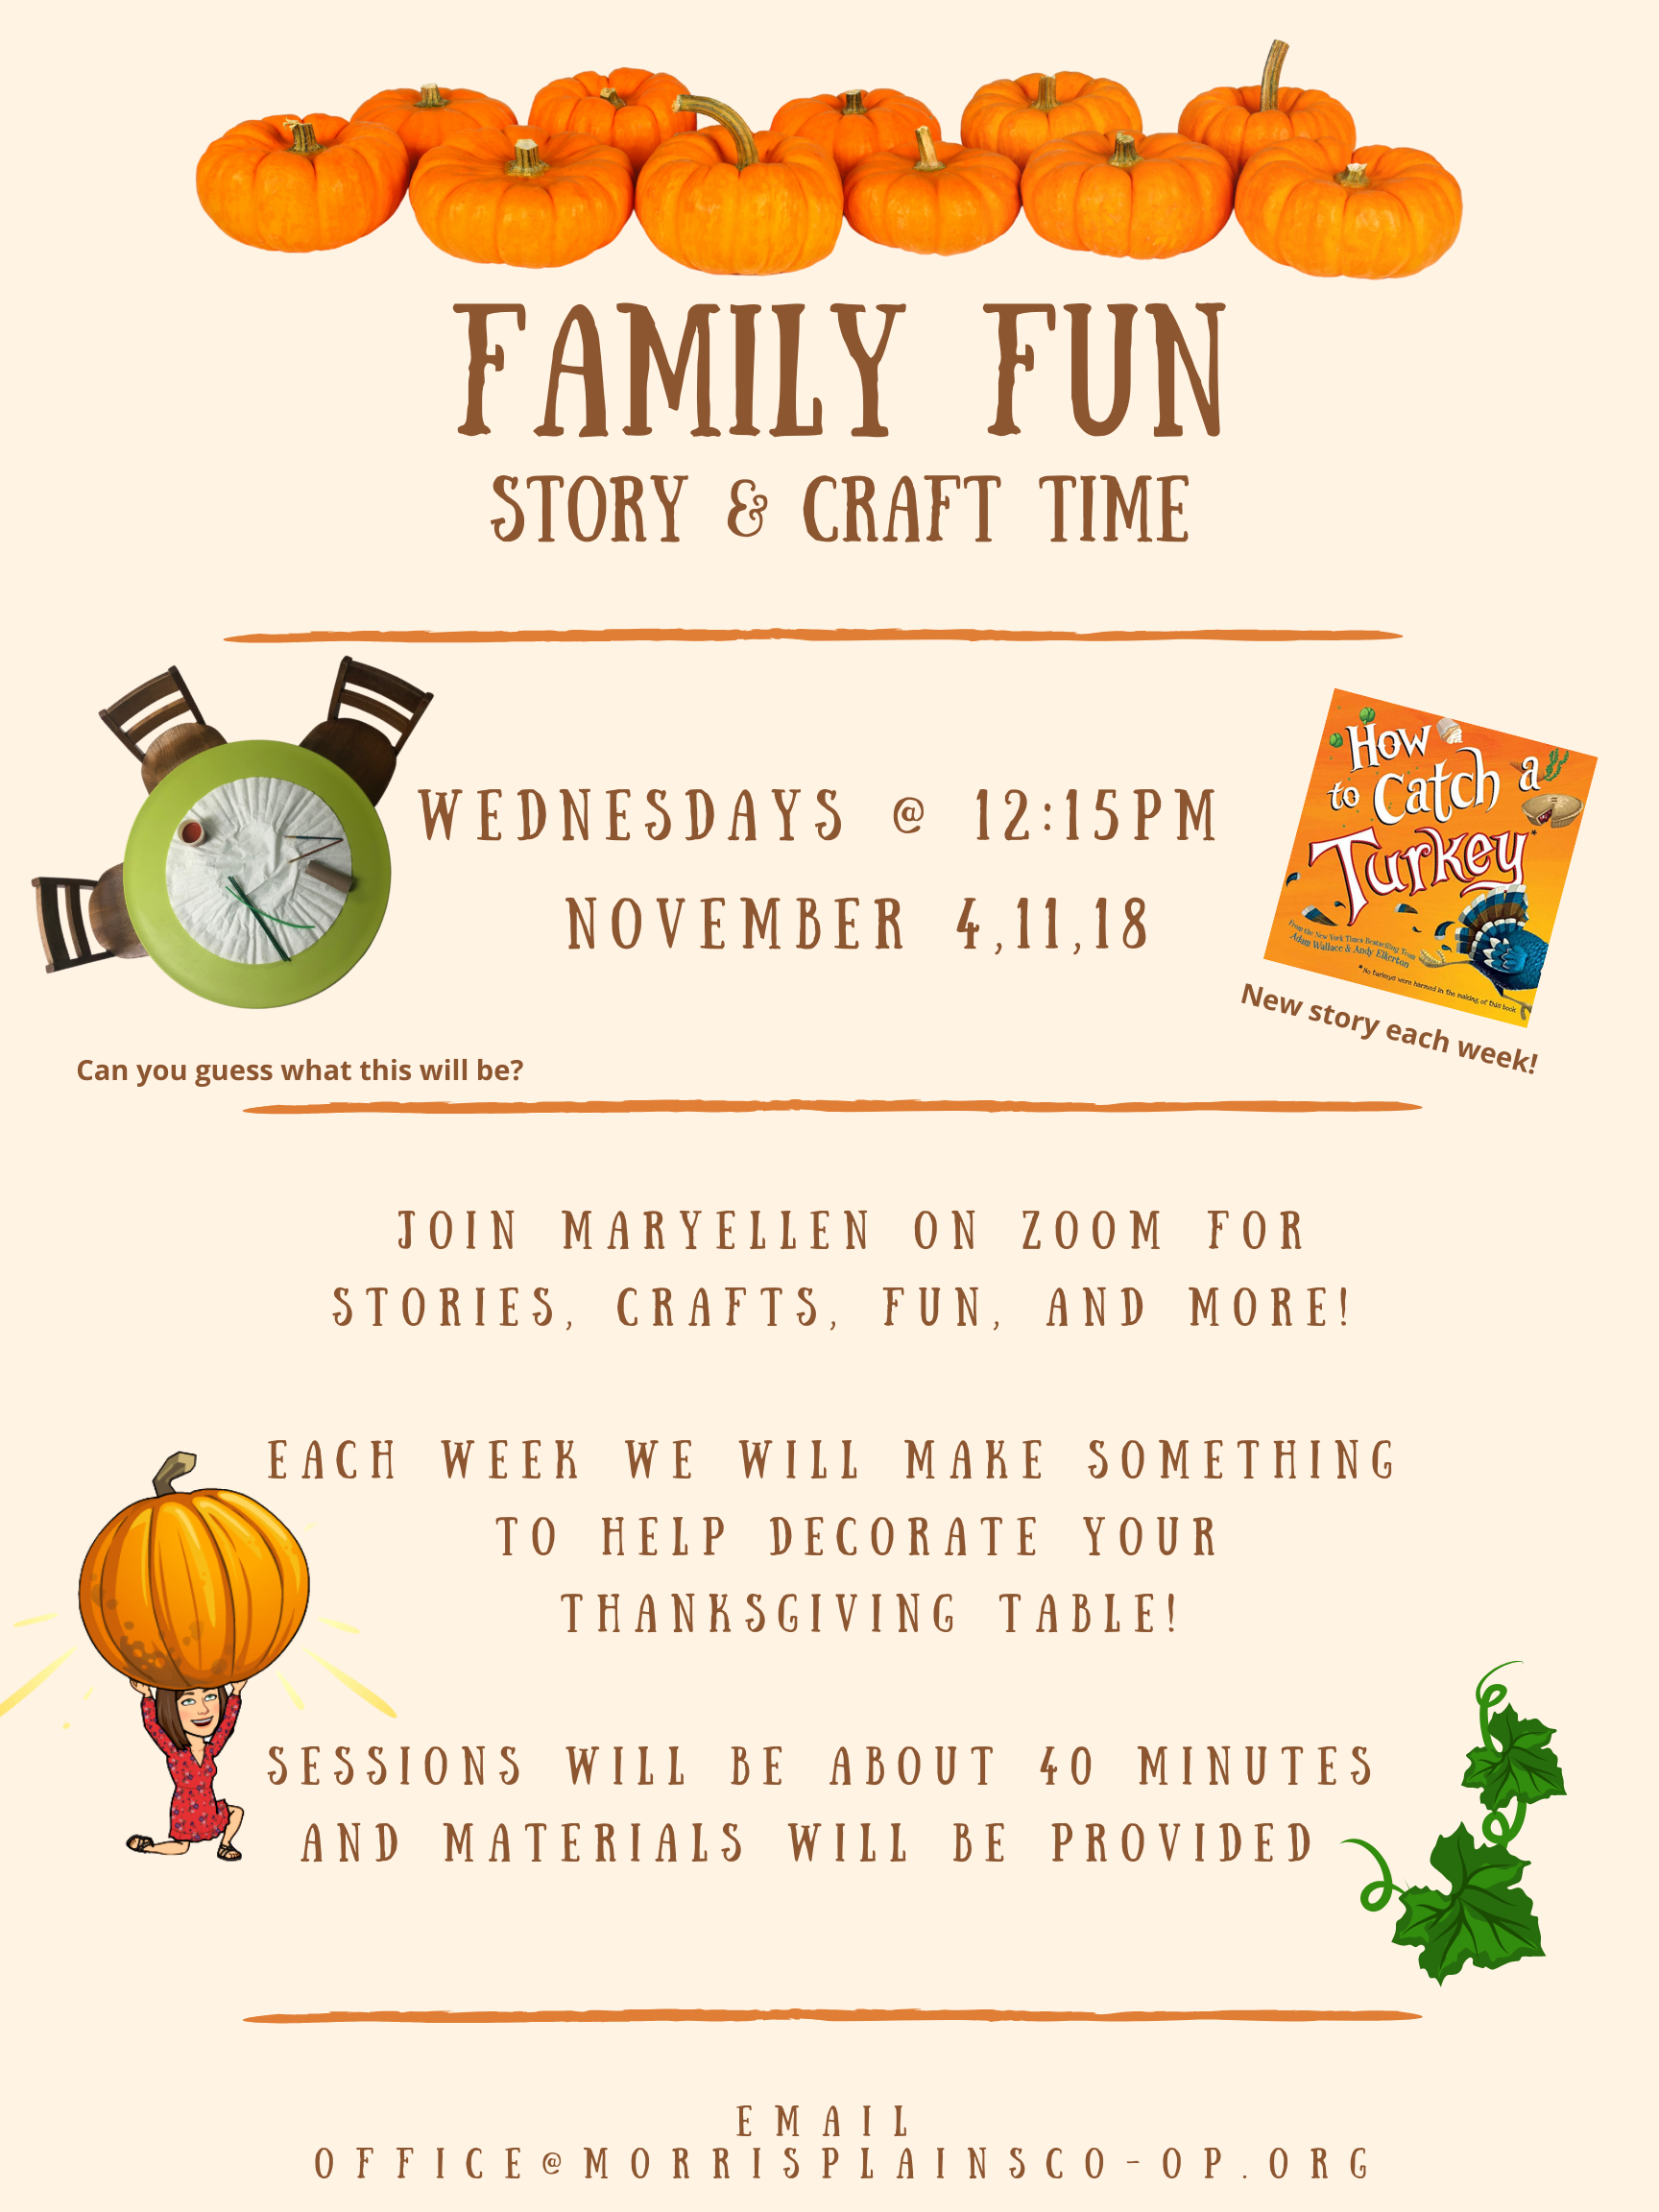 Family Fun Story & Craft Time